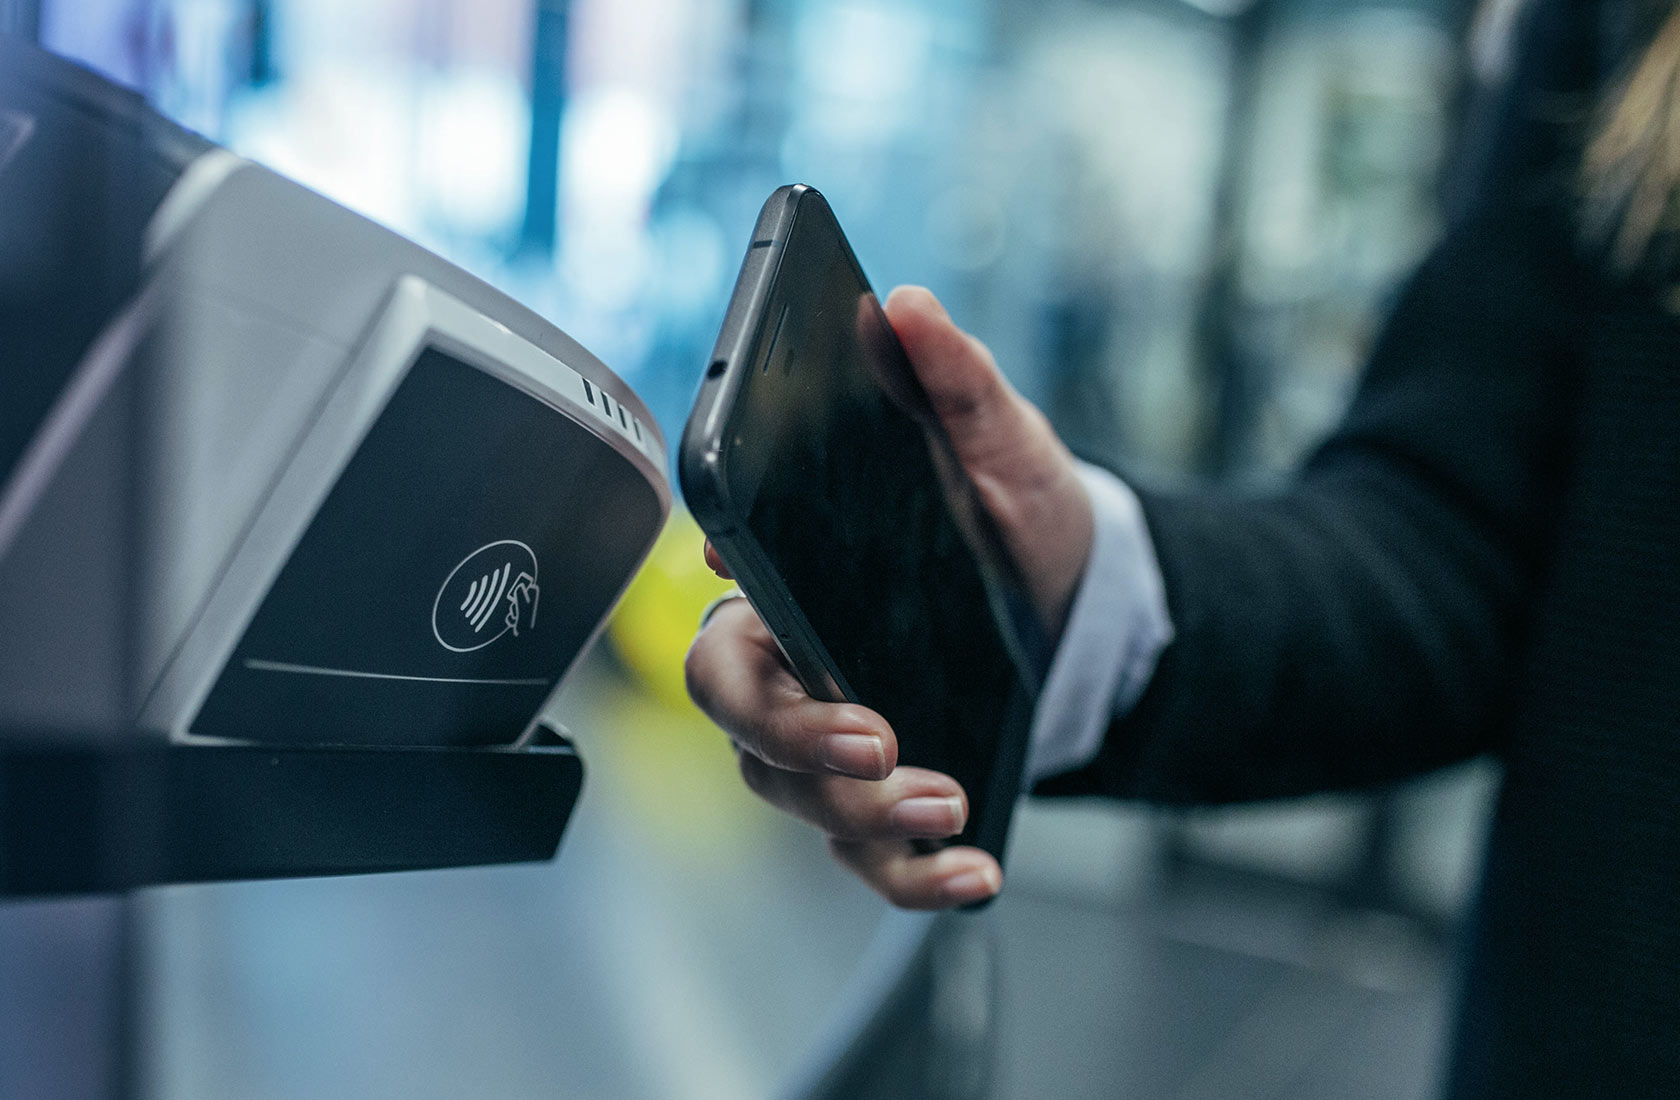 merchant service providers and getting the customer experience right in a competitive market